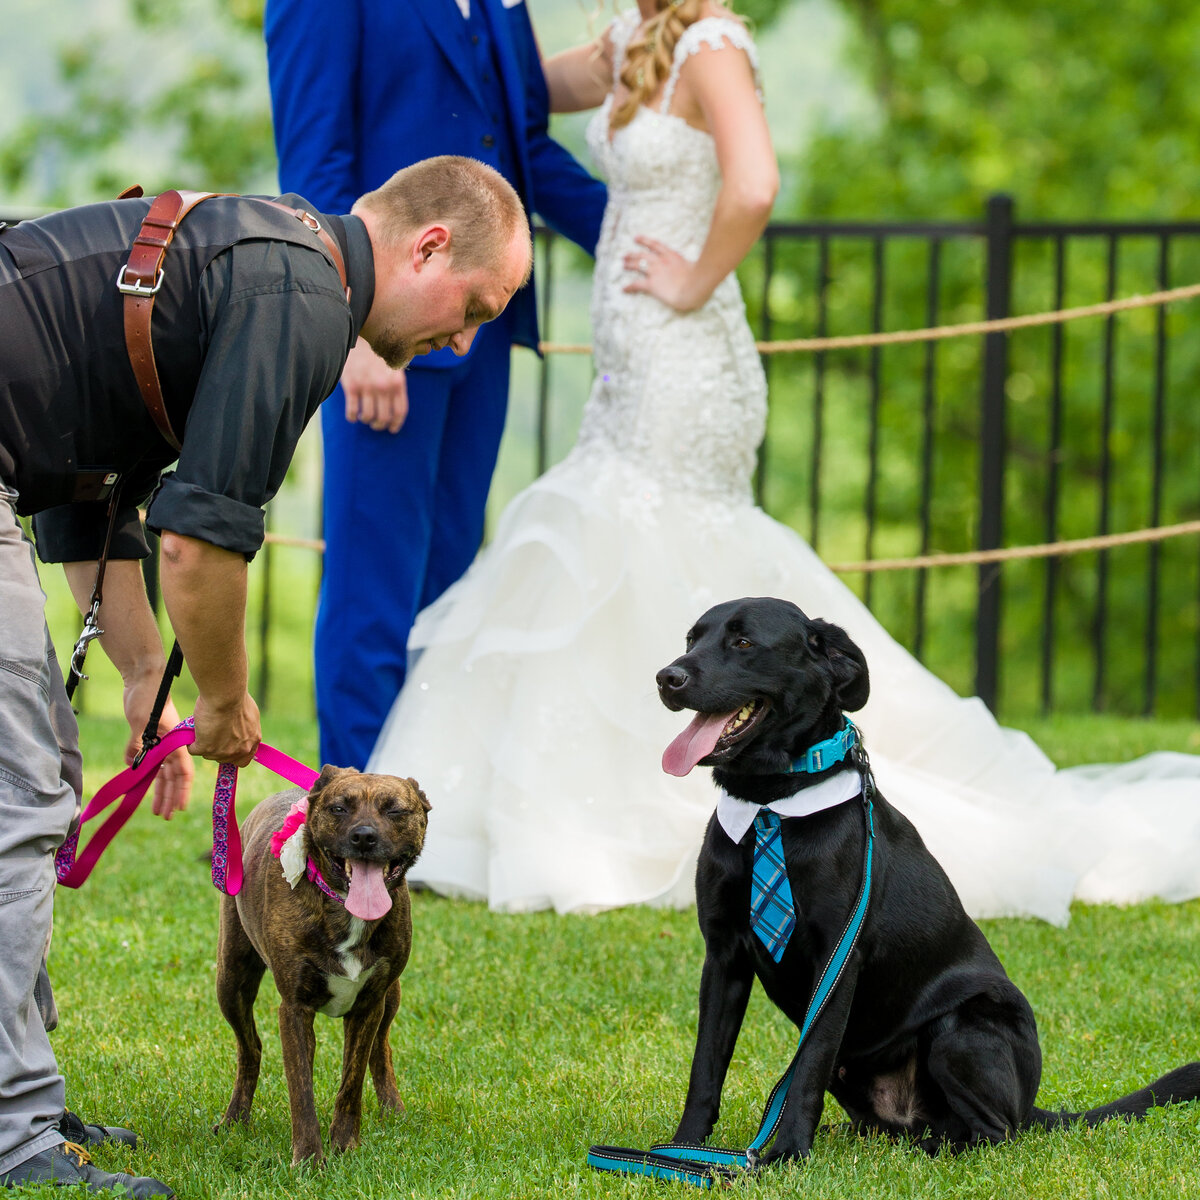 Behind the scenes with Travis and dogs at wedding